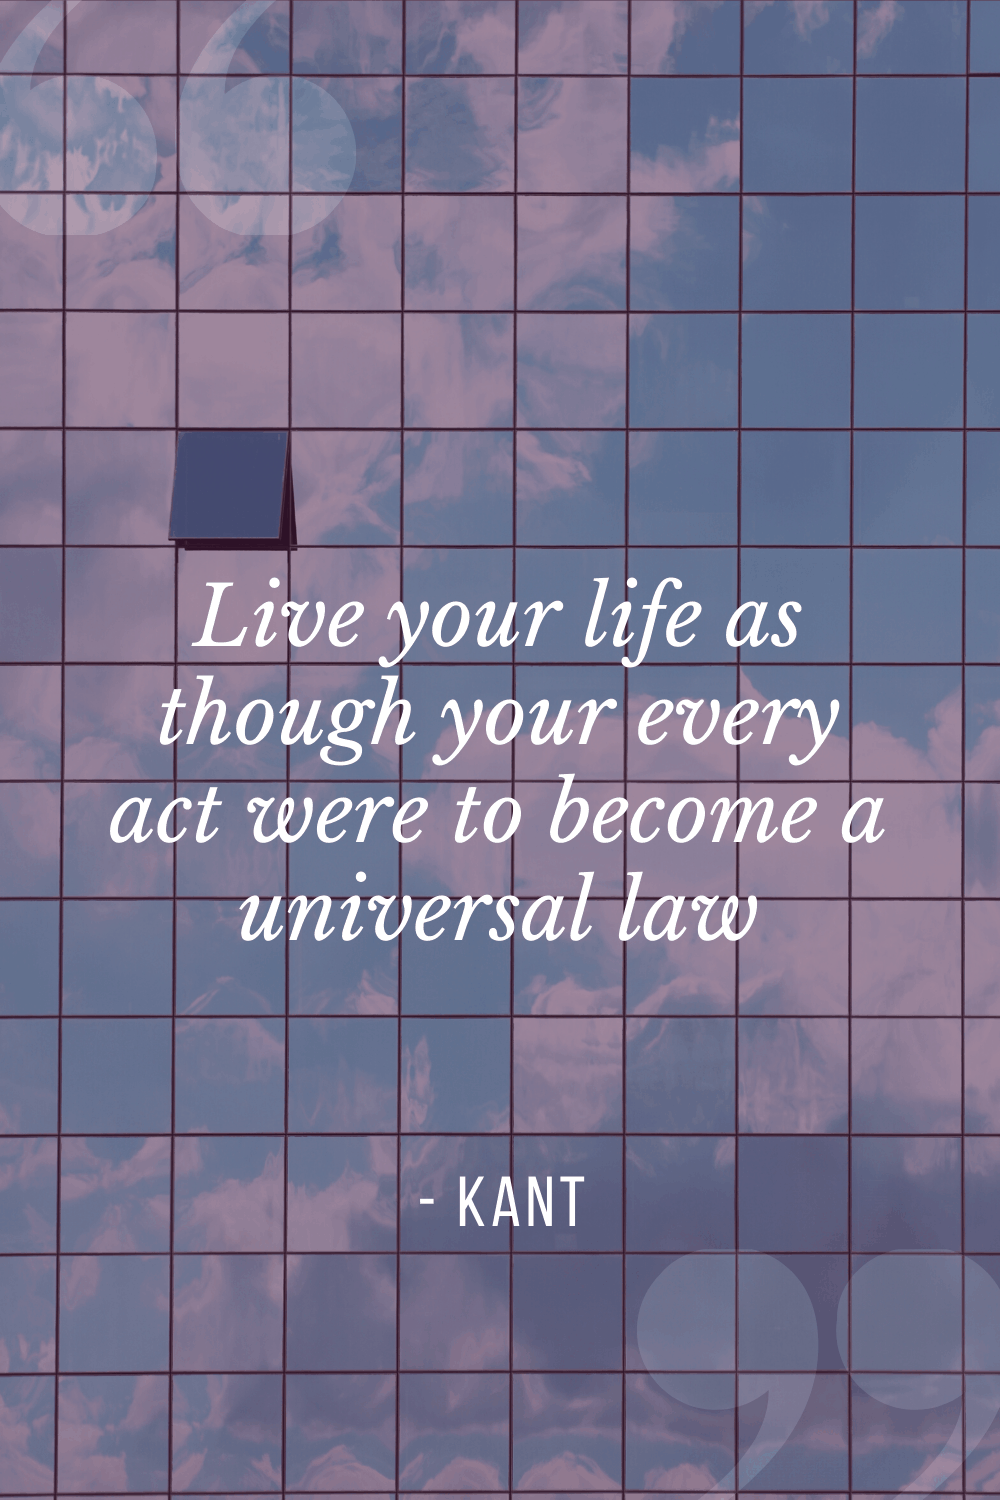 """Live your life as though your every act were to become a universal law"", Immanuel Kant"